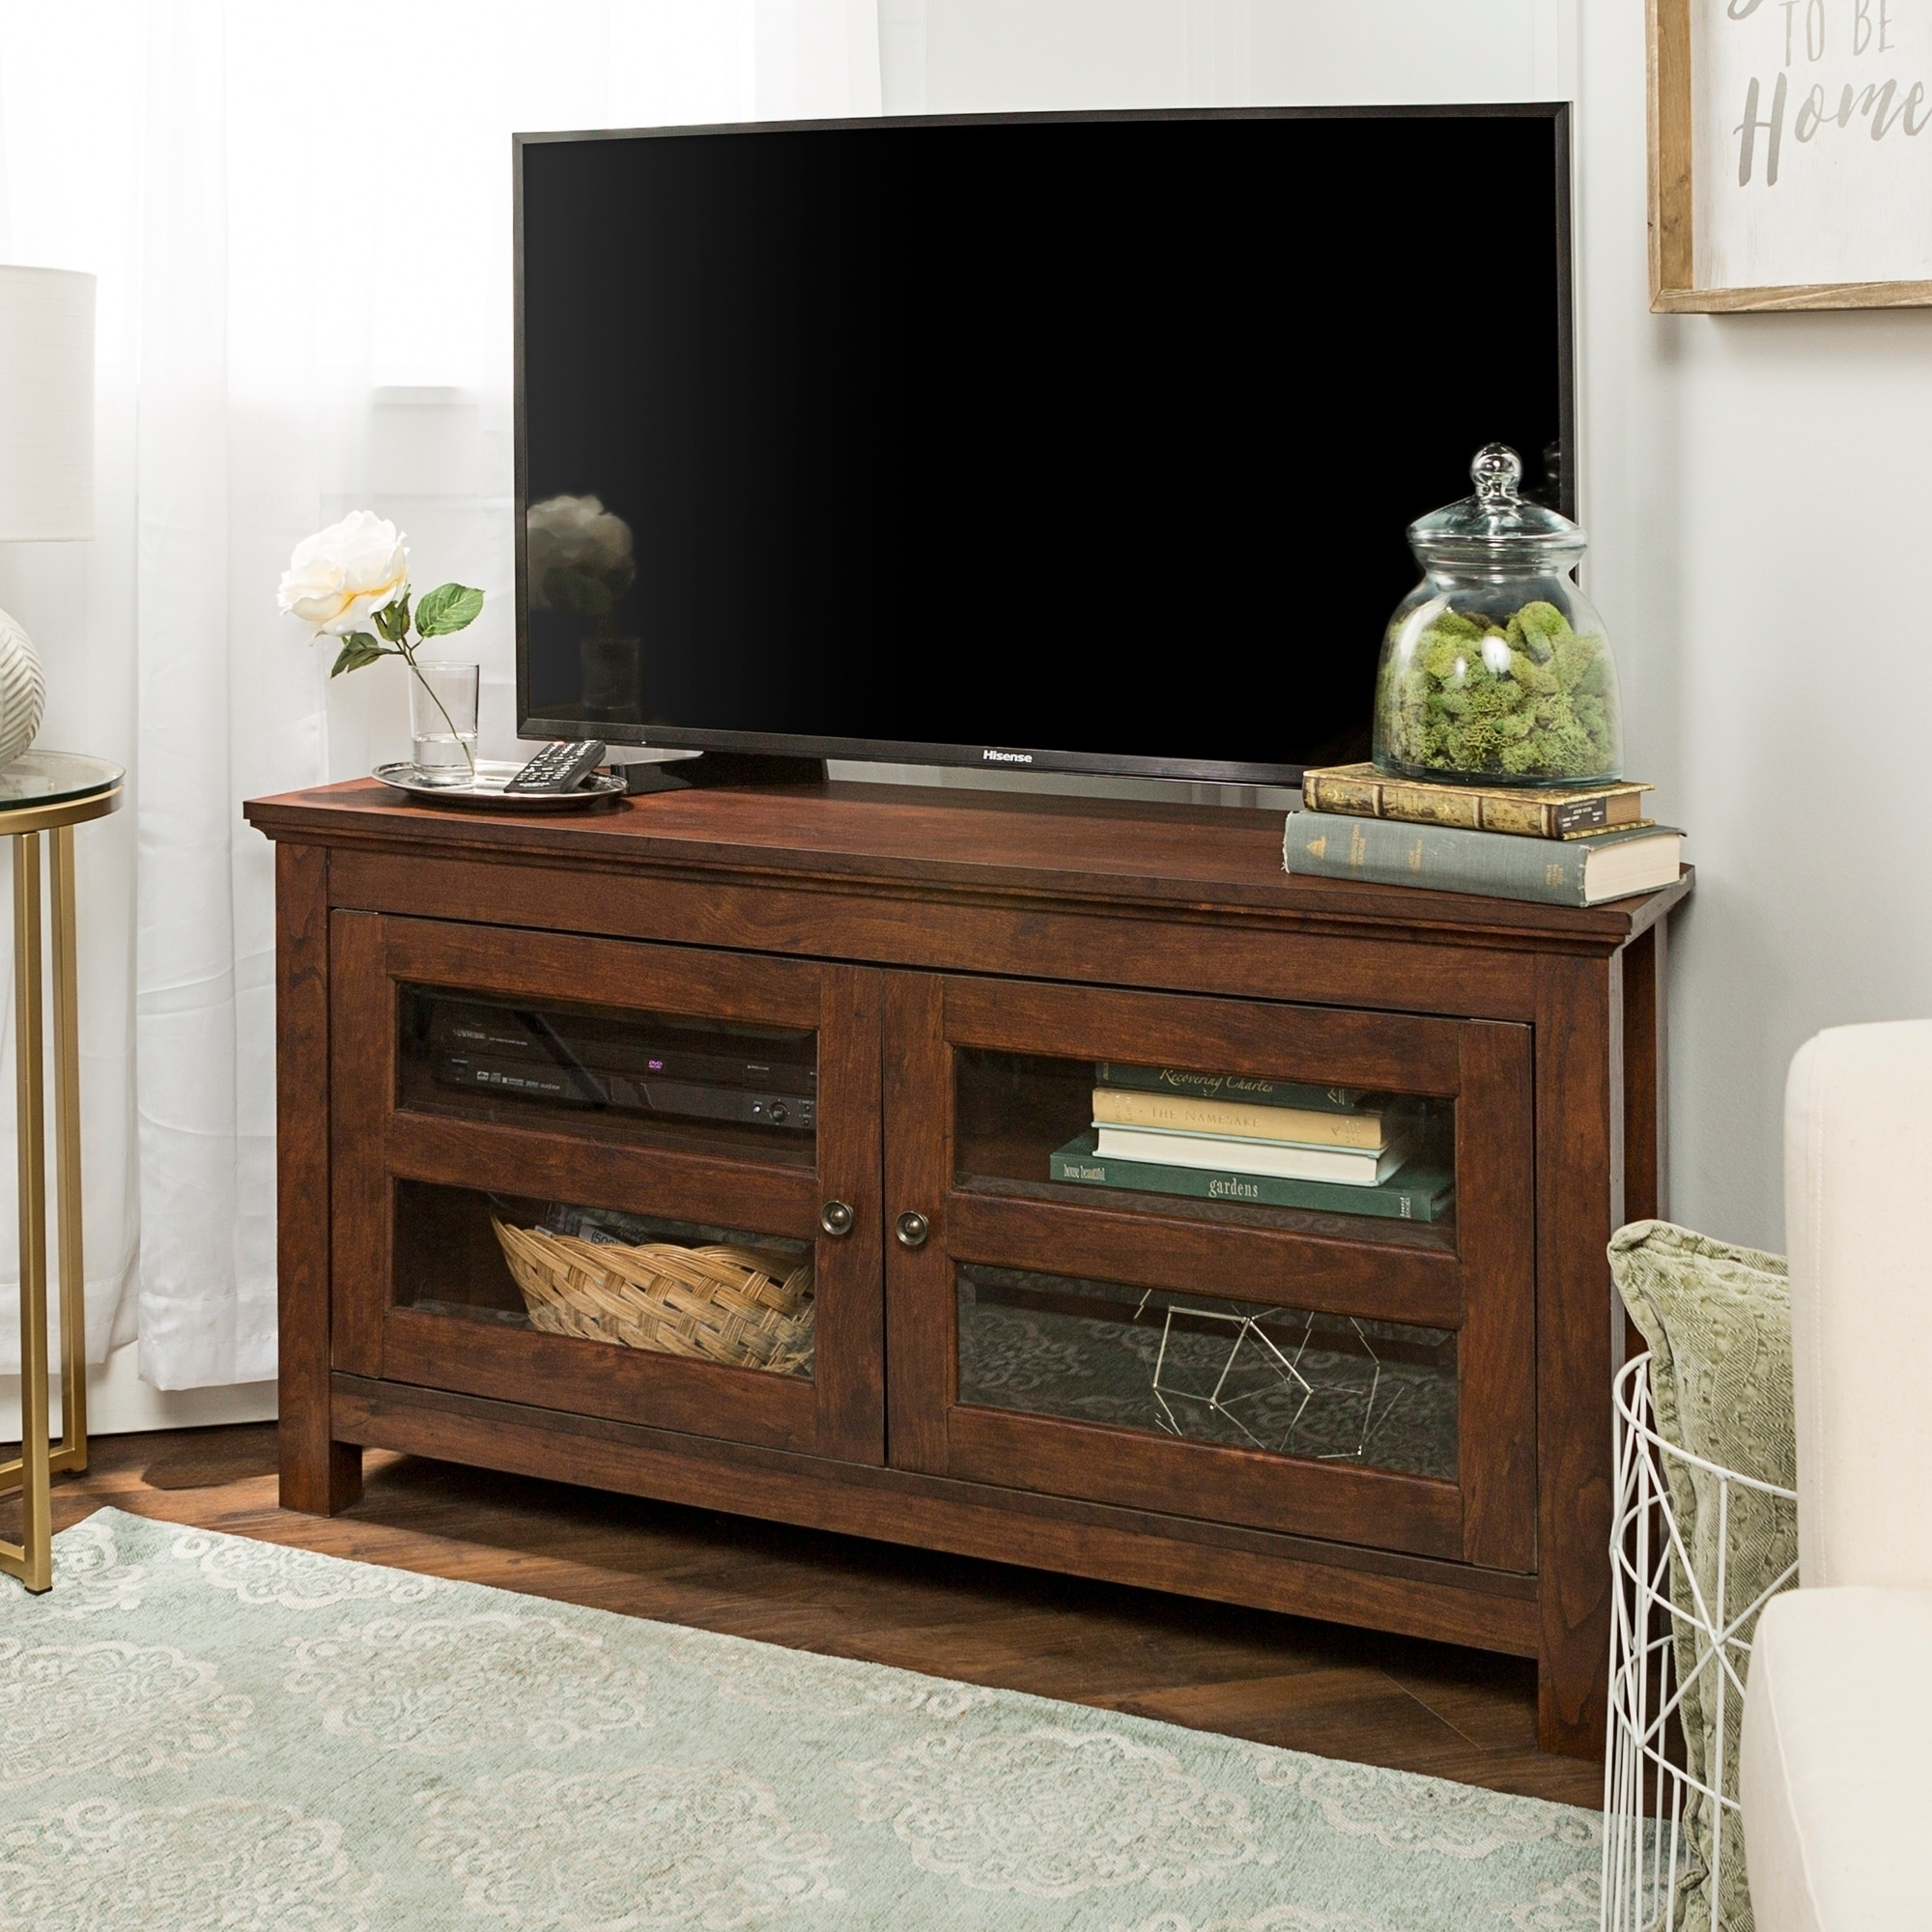 Shop Copper Grove Bow Valley 44 Inch Brown Wood Corner Tv Stand On